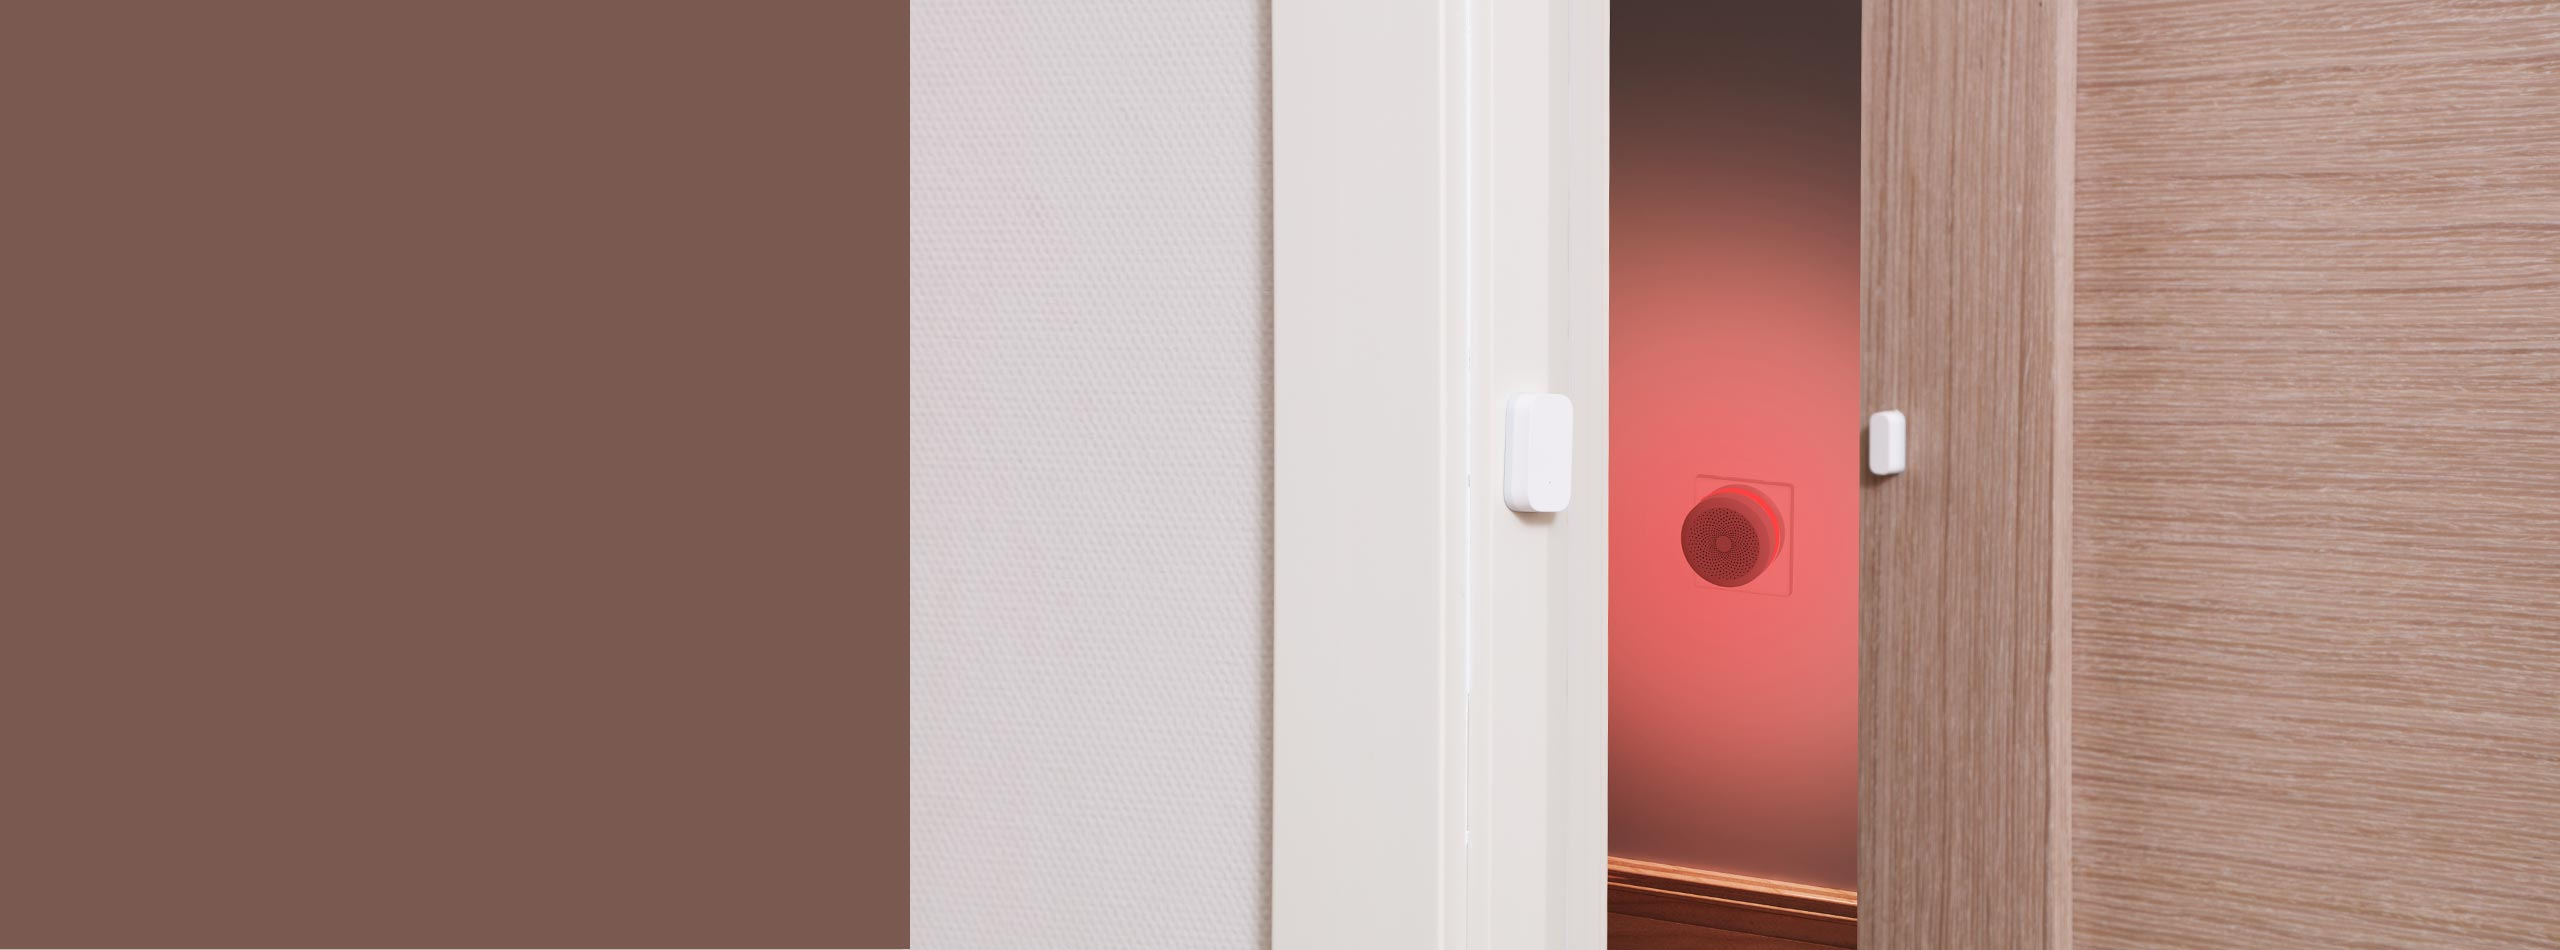 home security with Aqara door sensor